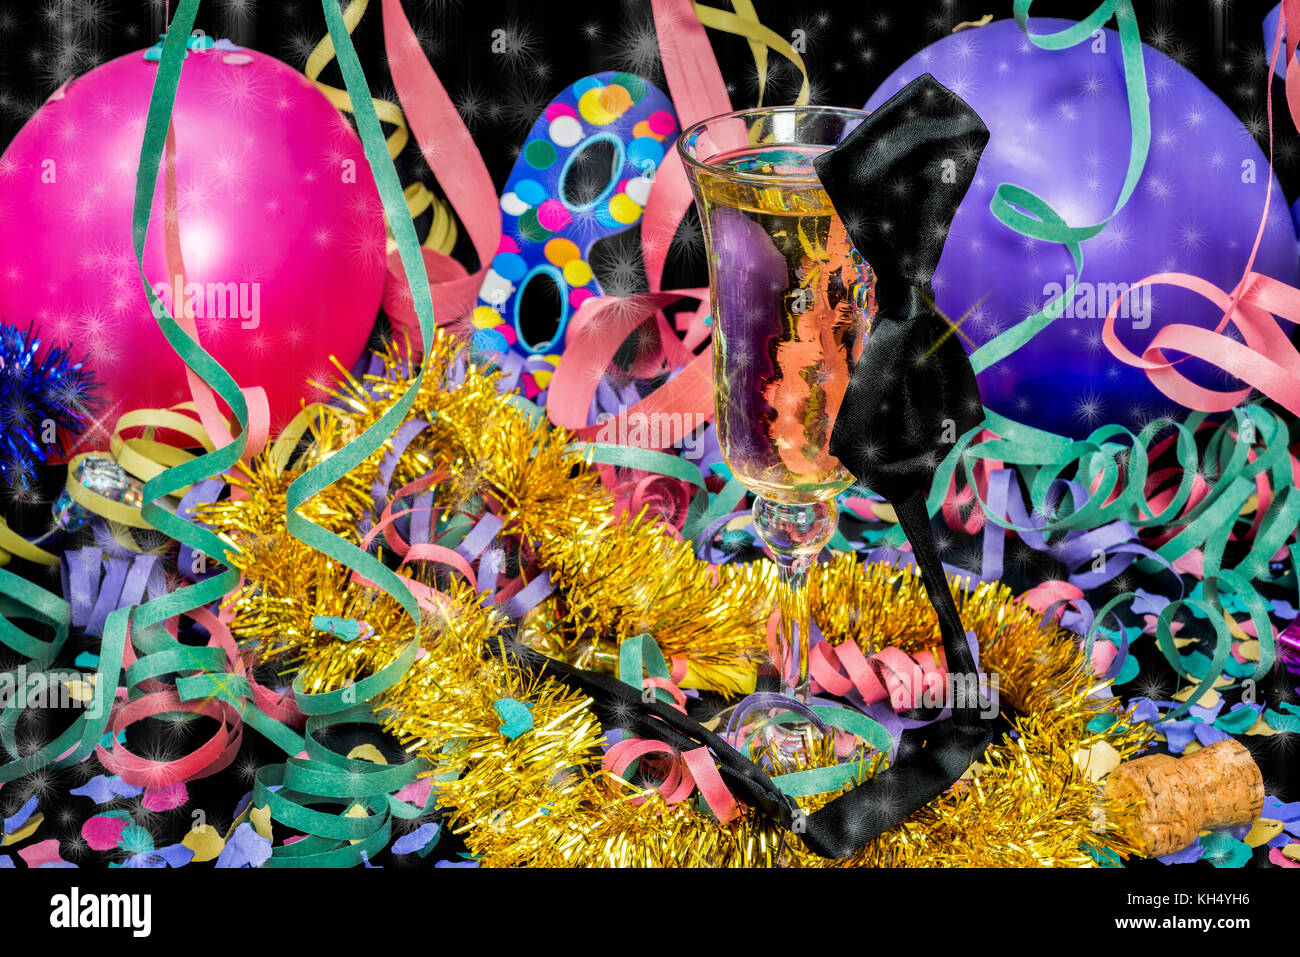 New Year party with champagne glass and bowtie and star rain on black background - Stock Image